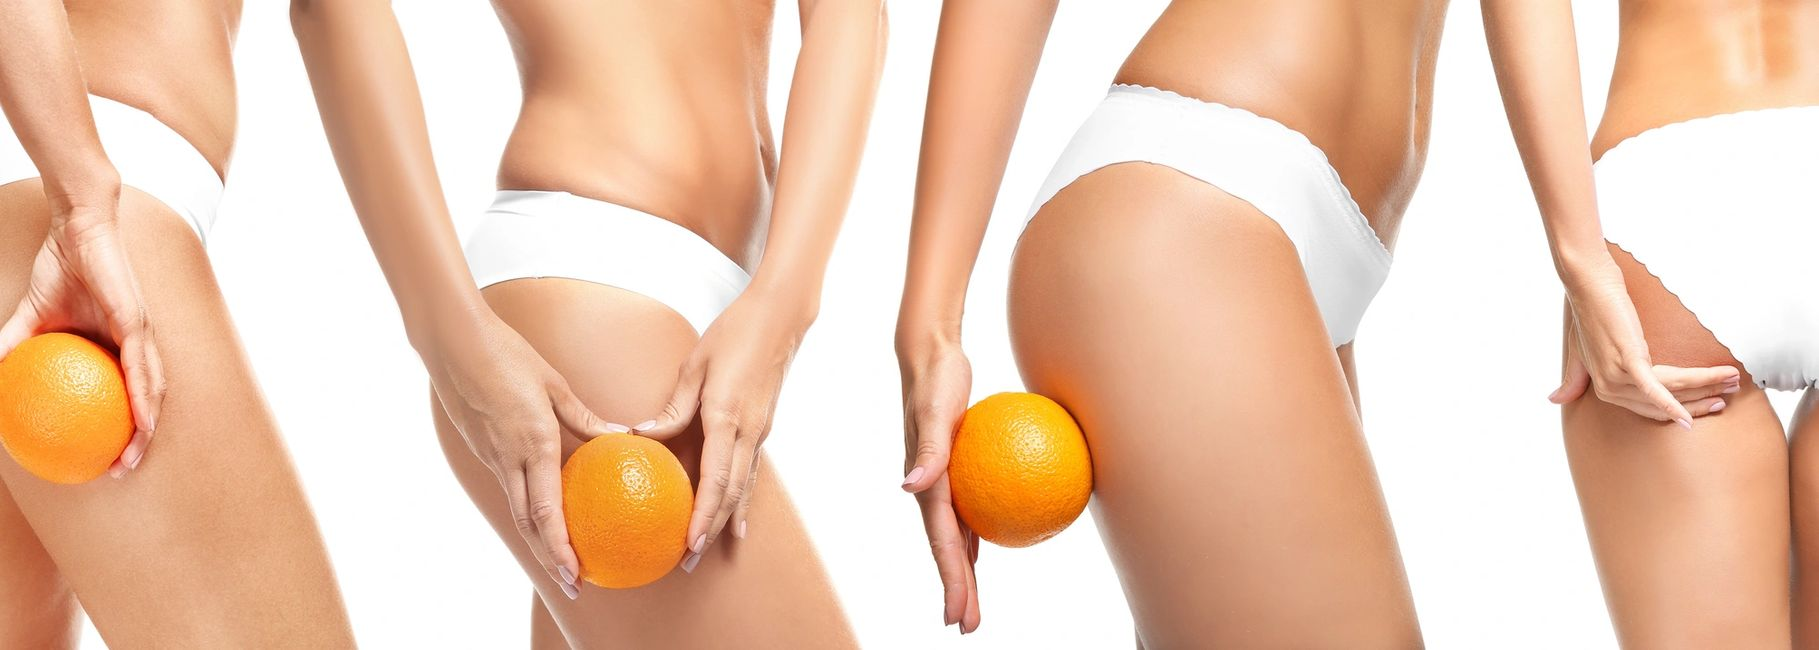 non-surgical butt lift Little Rock Arkansas, Brazilian butt lift little rock, butt lift near me, Brazilian Butt lift near me, Butt cheek enhancement